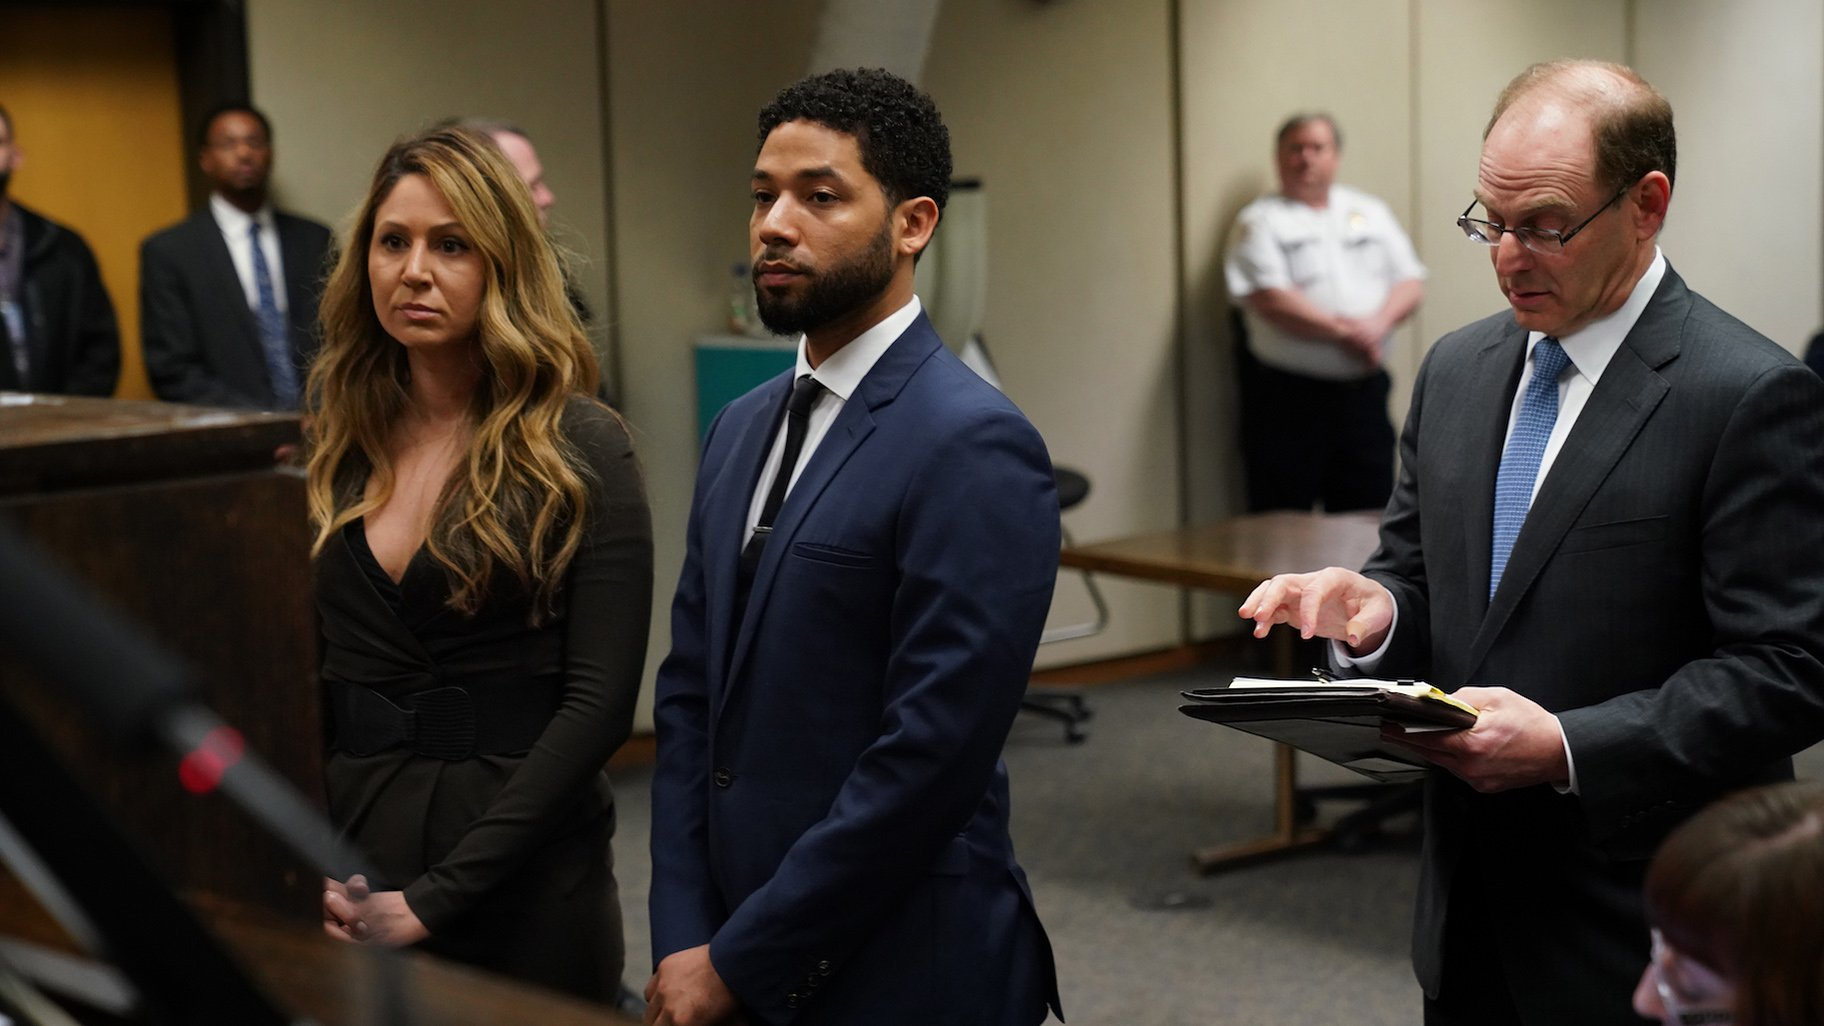 Jussie Smollett appears at a hearing for judge assignment with his attorney Tina Glandian, left, at the Leighton Criminal Court Building on Thursday, March 14, 2019. (E. Jason Wambsgans / Pool / Chicago Tribune)